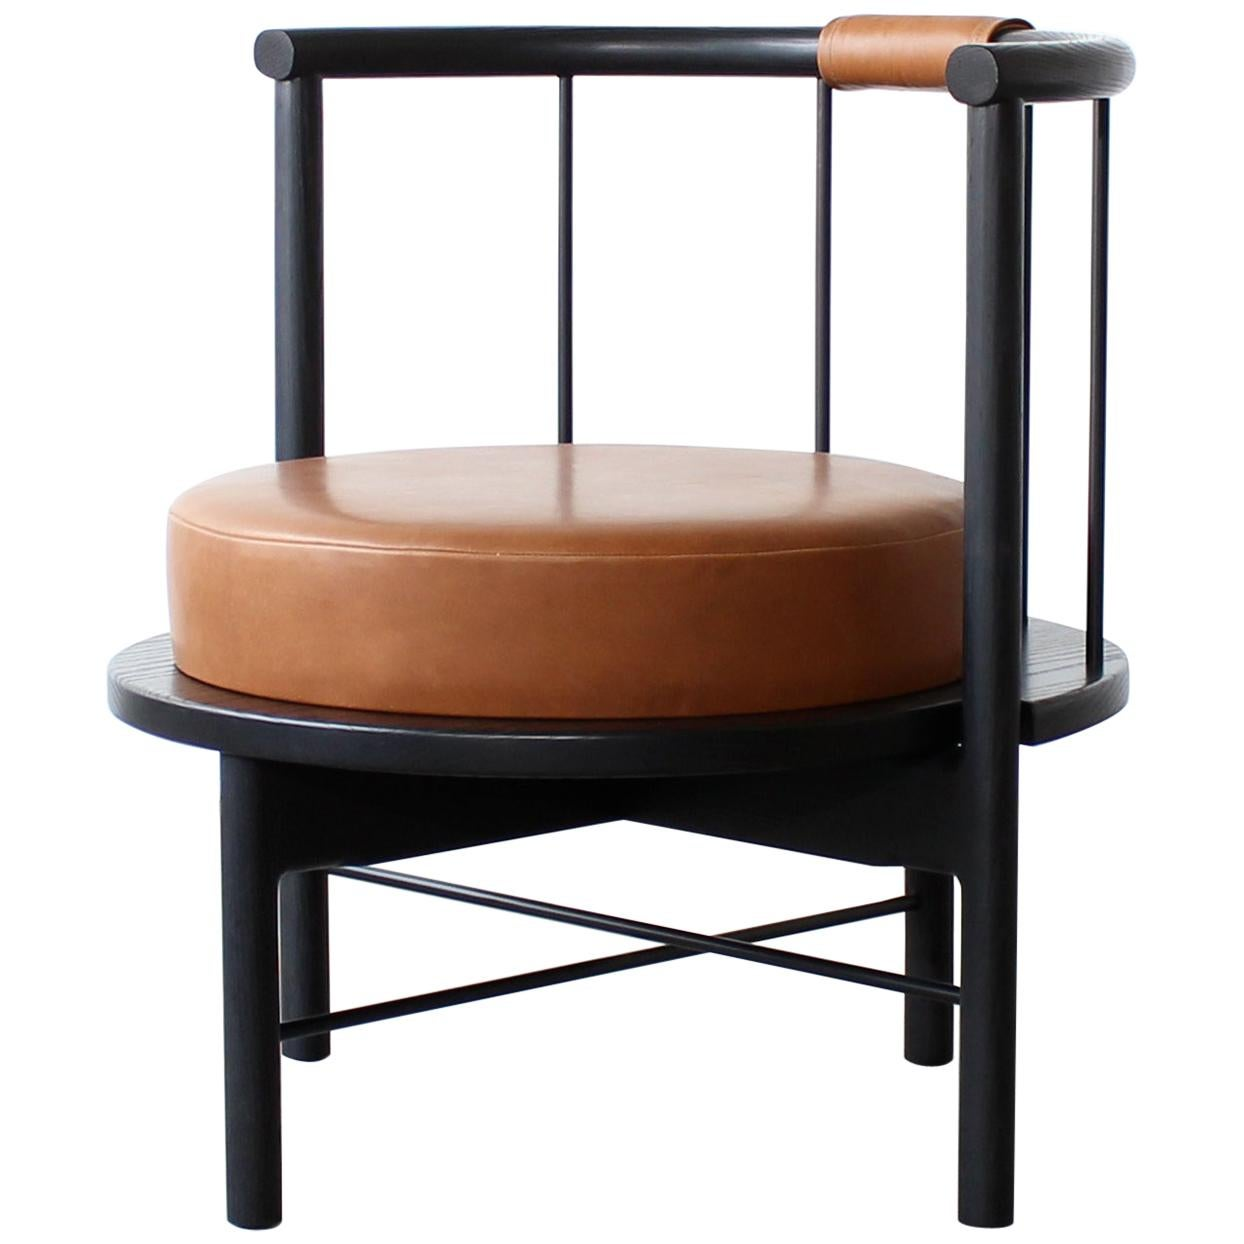 Lloyd Barrel Back Lounge and Accent Chair by Crump and Kwash